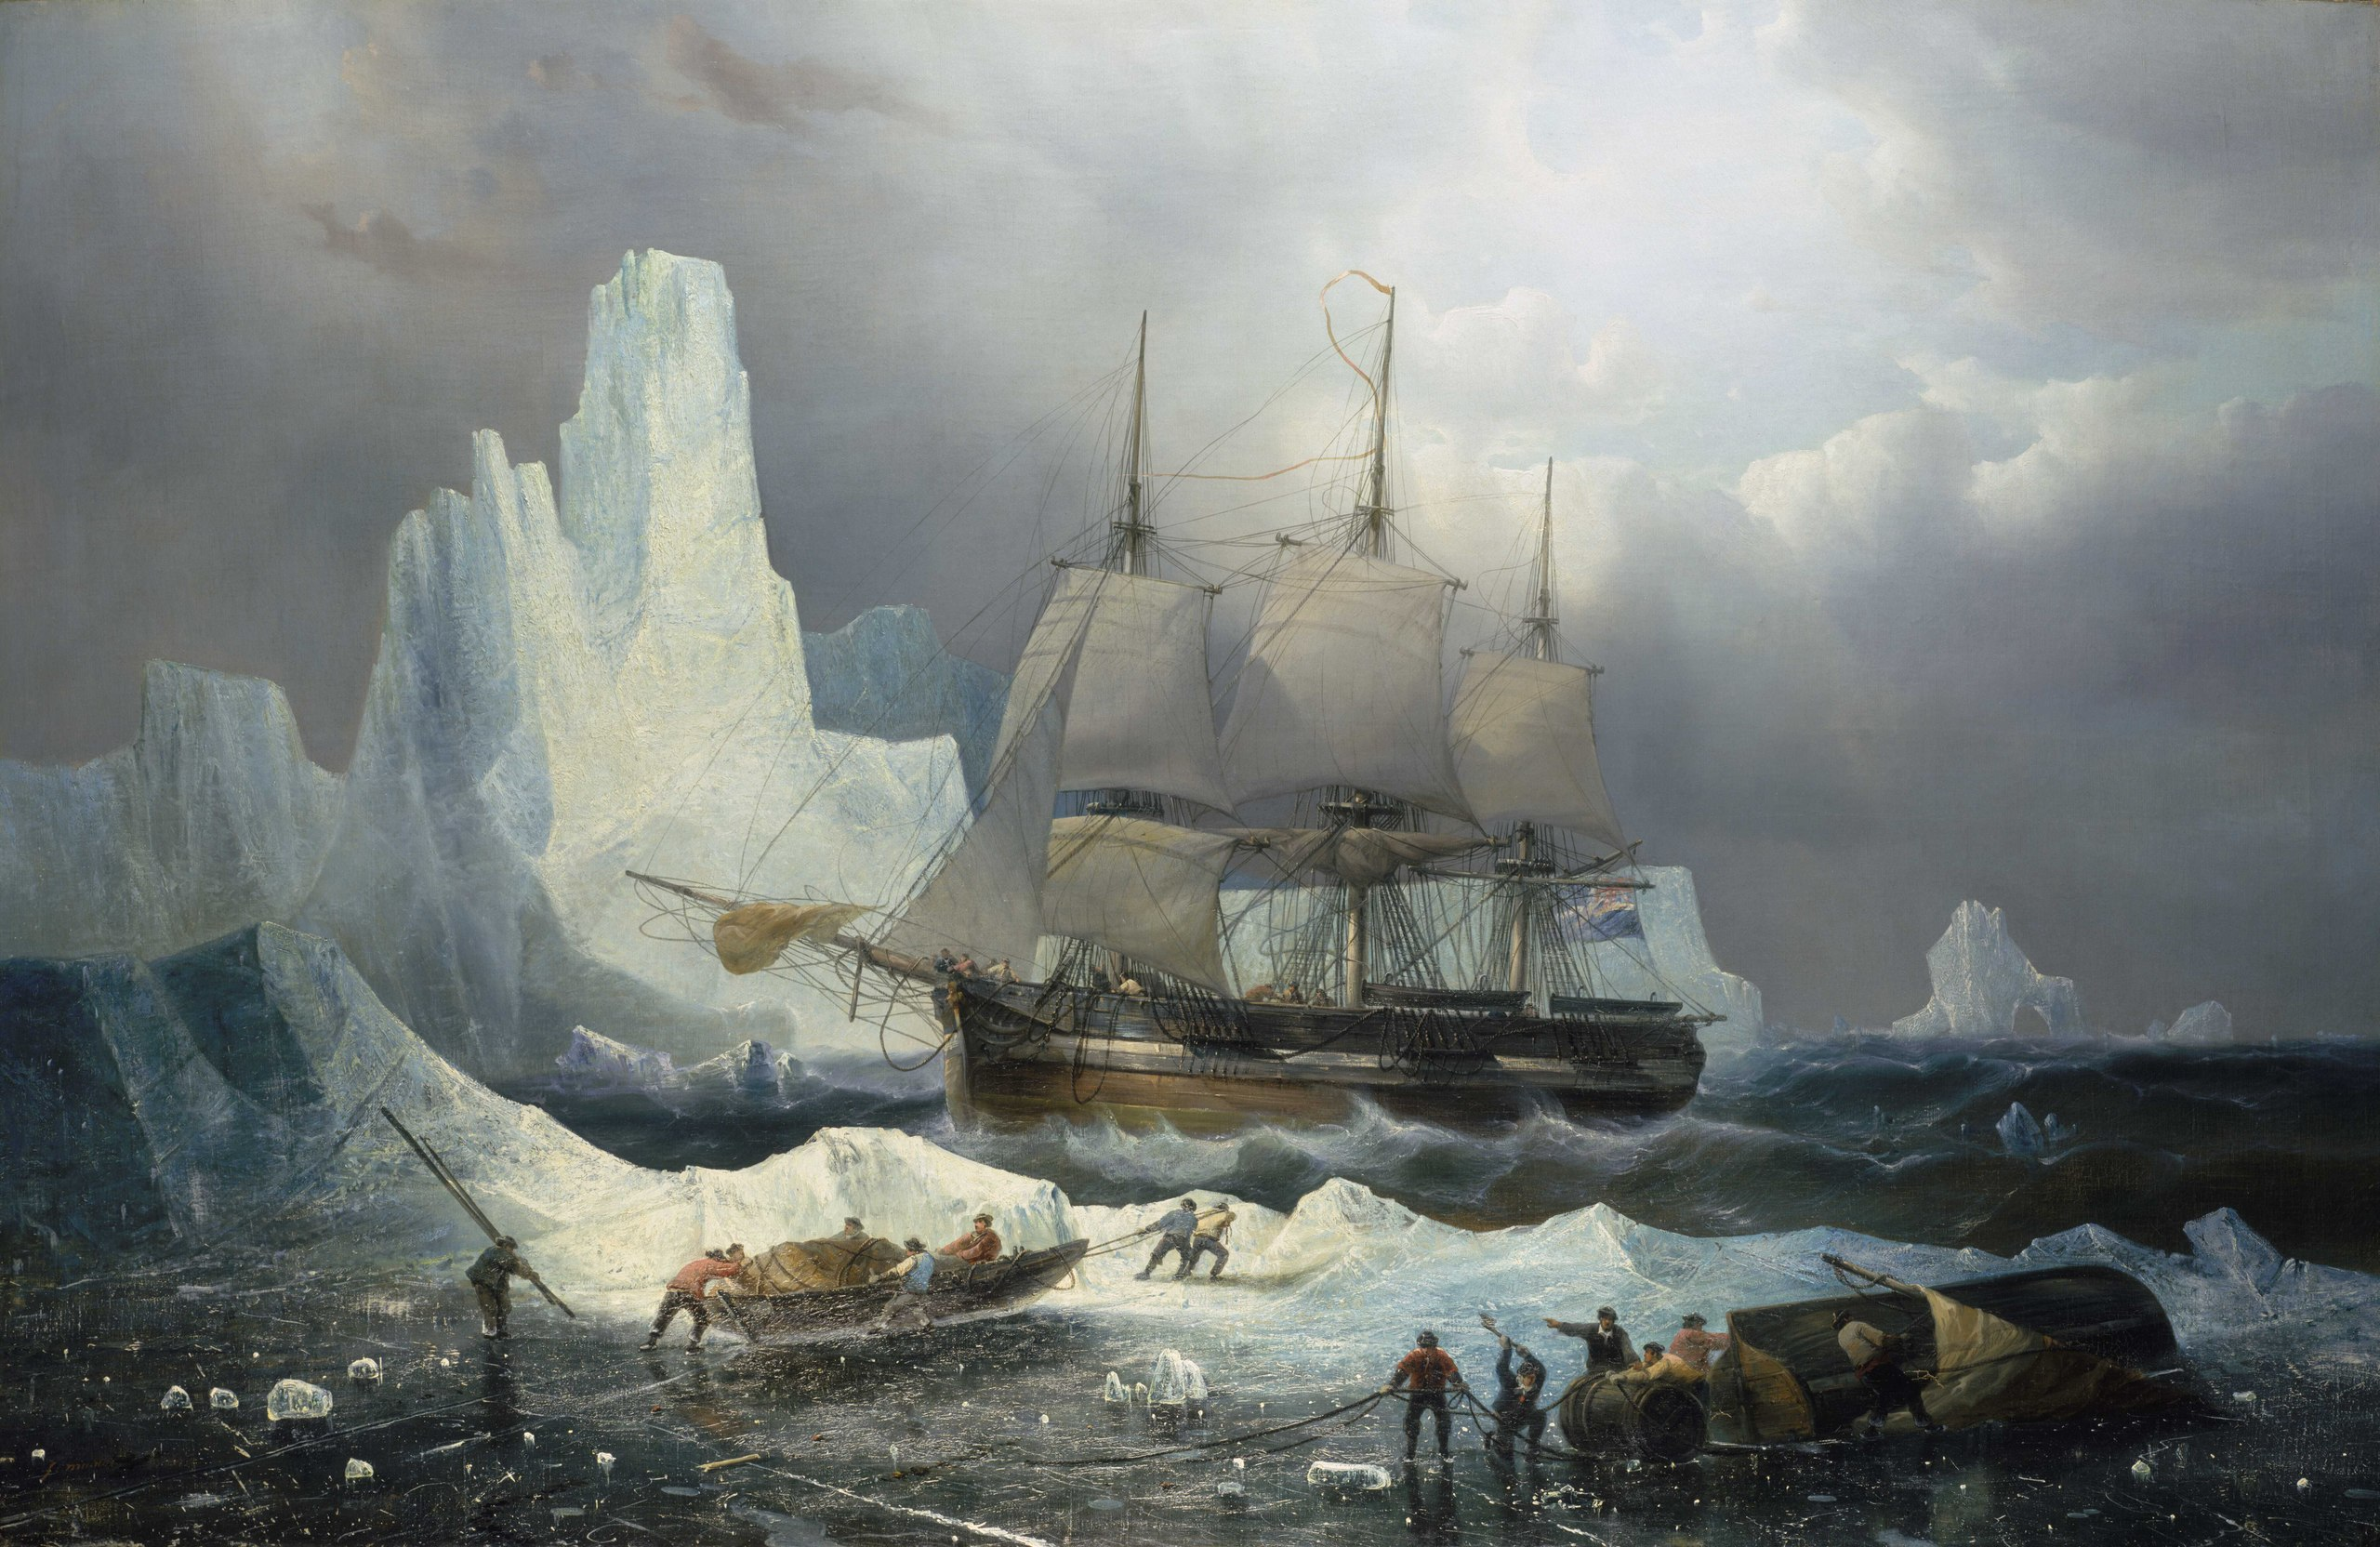 A painting of the HMS Erebus, aboard which John Gregory served as an engineer